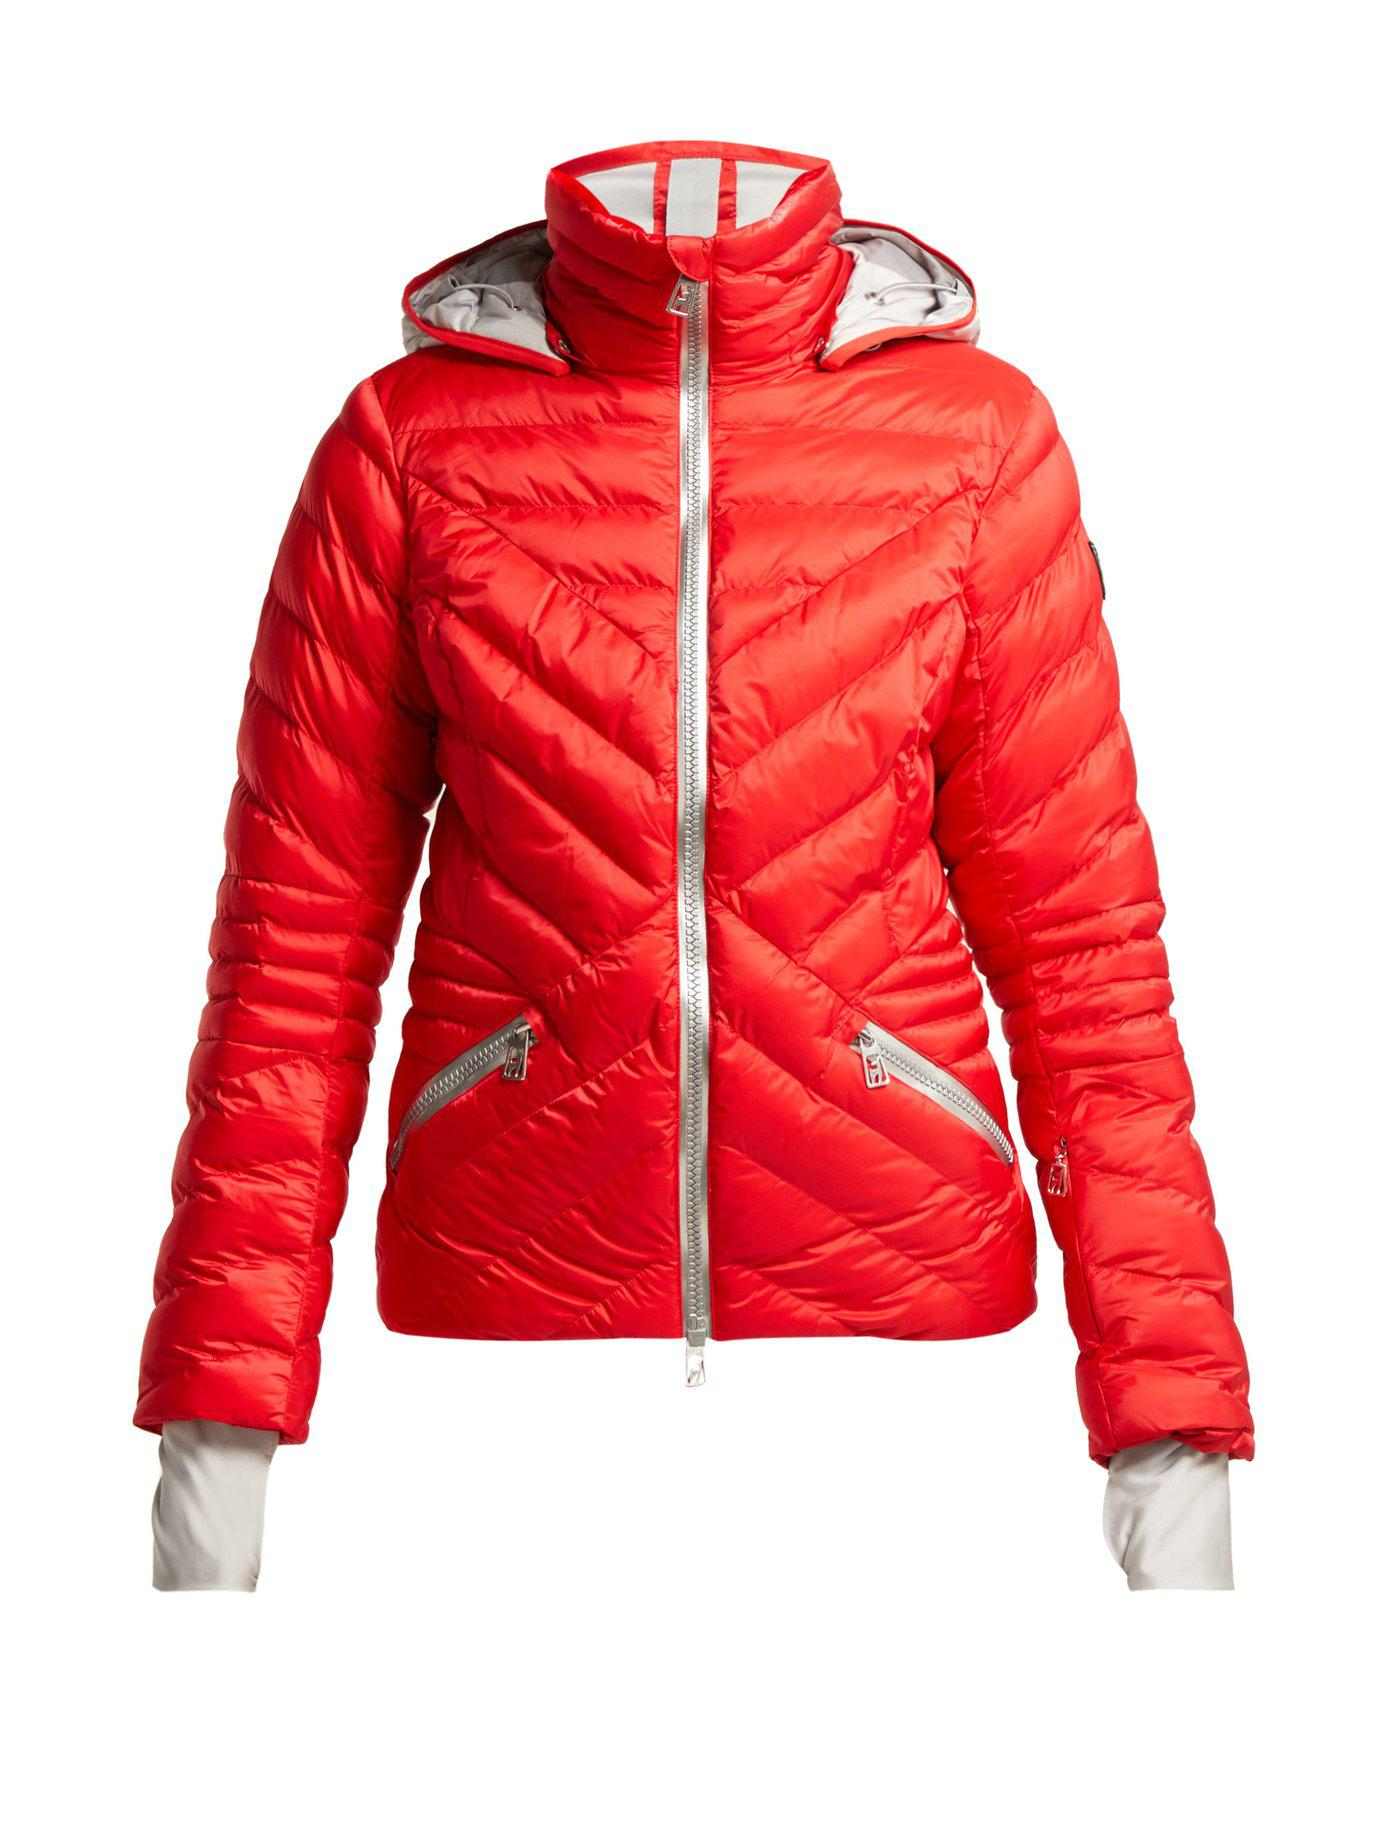 08eedc6c2d80c Lyst - Toni Sailer Clementine Quilted Ski Jacket in Red